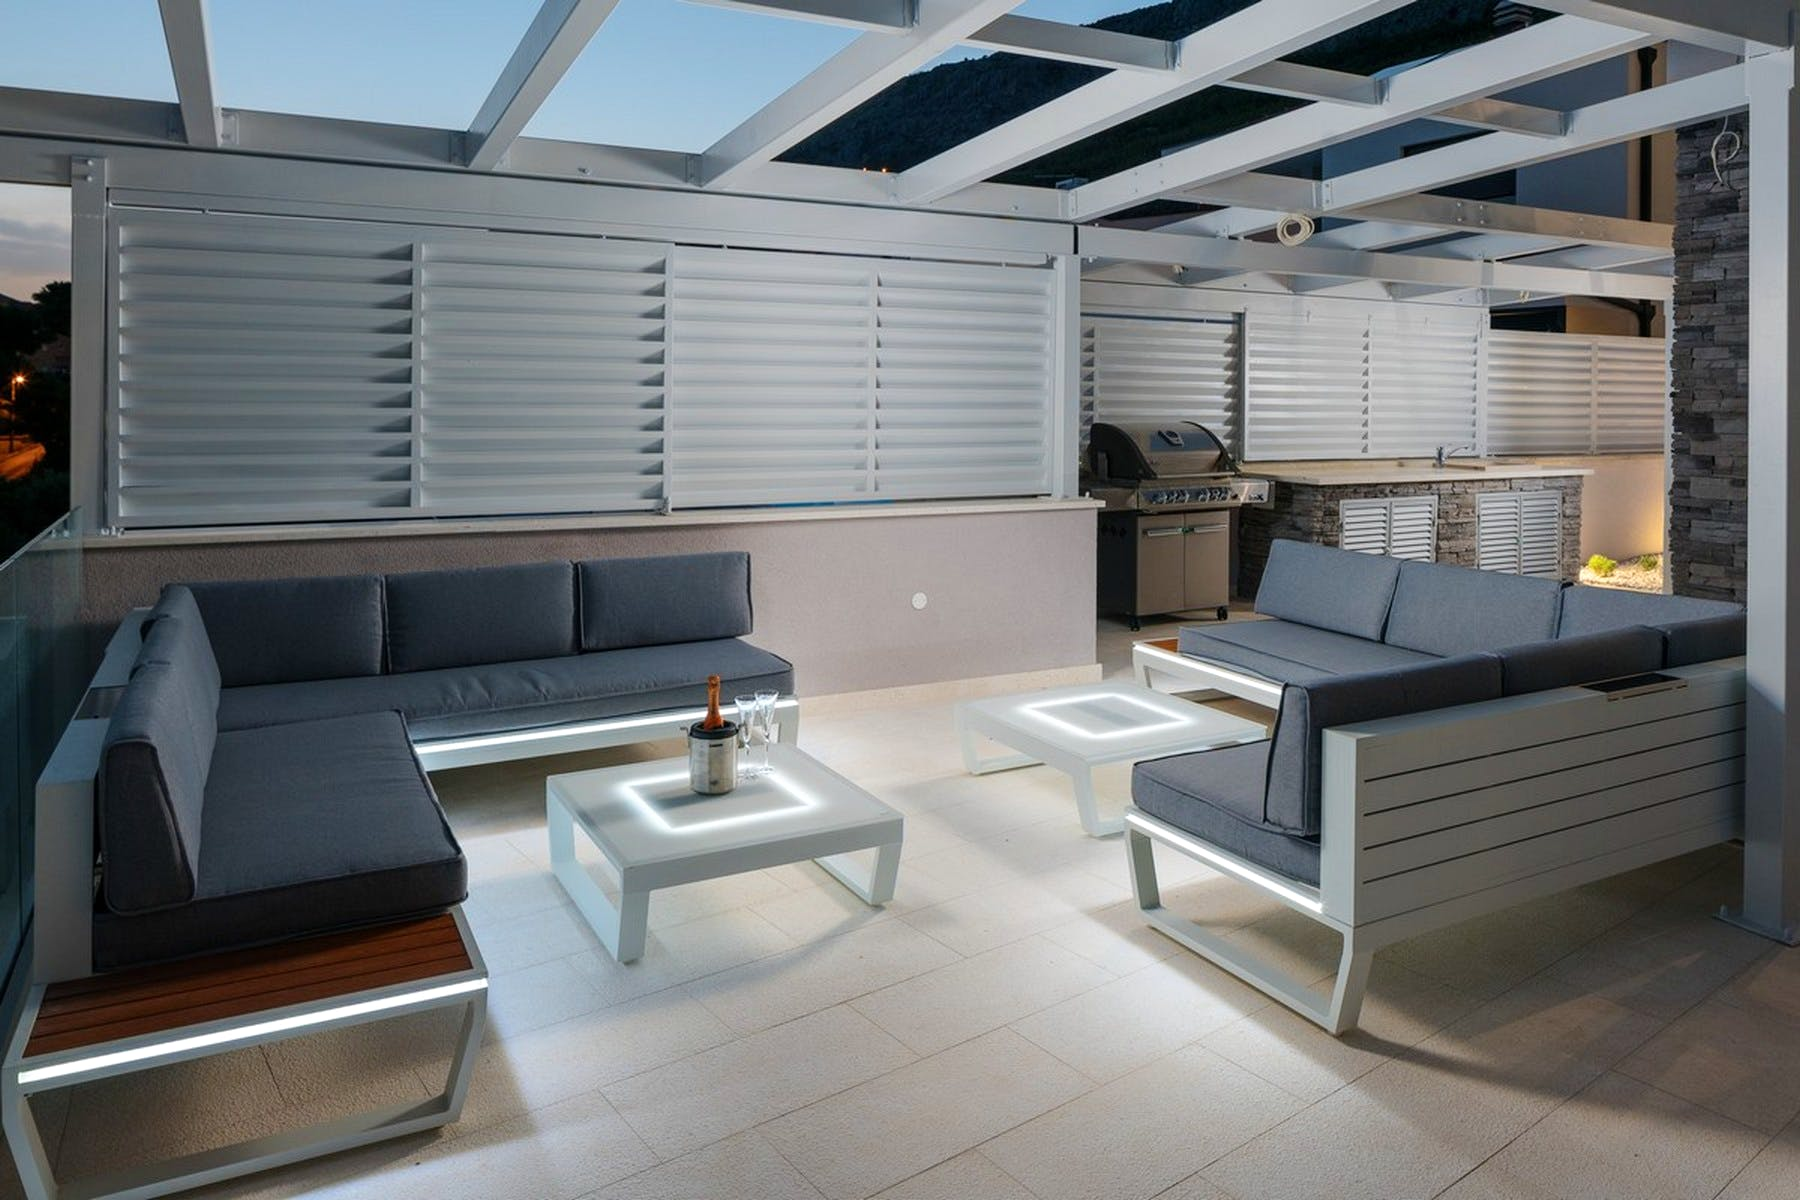 Outdoor lounge with a barbeque